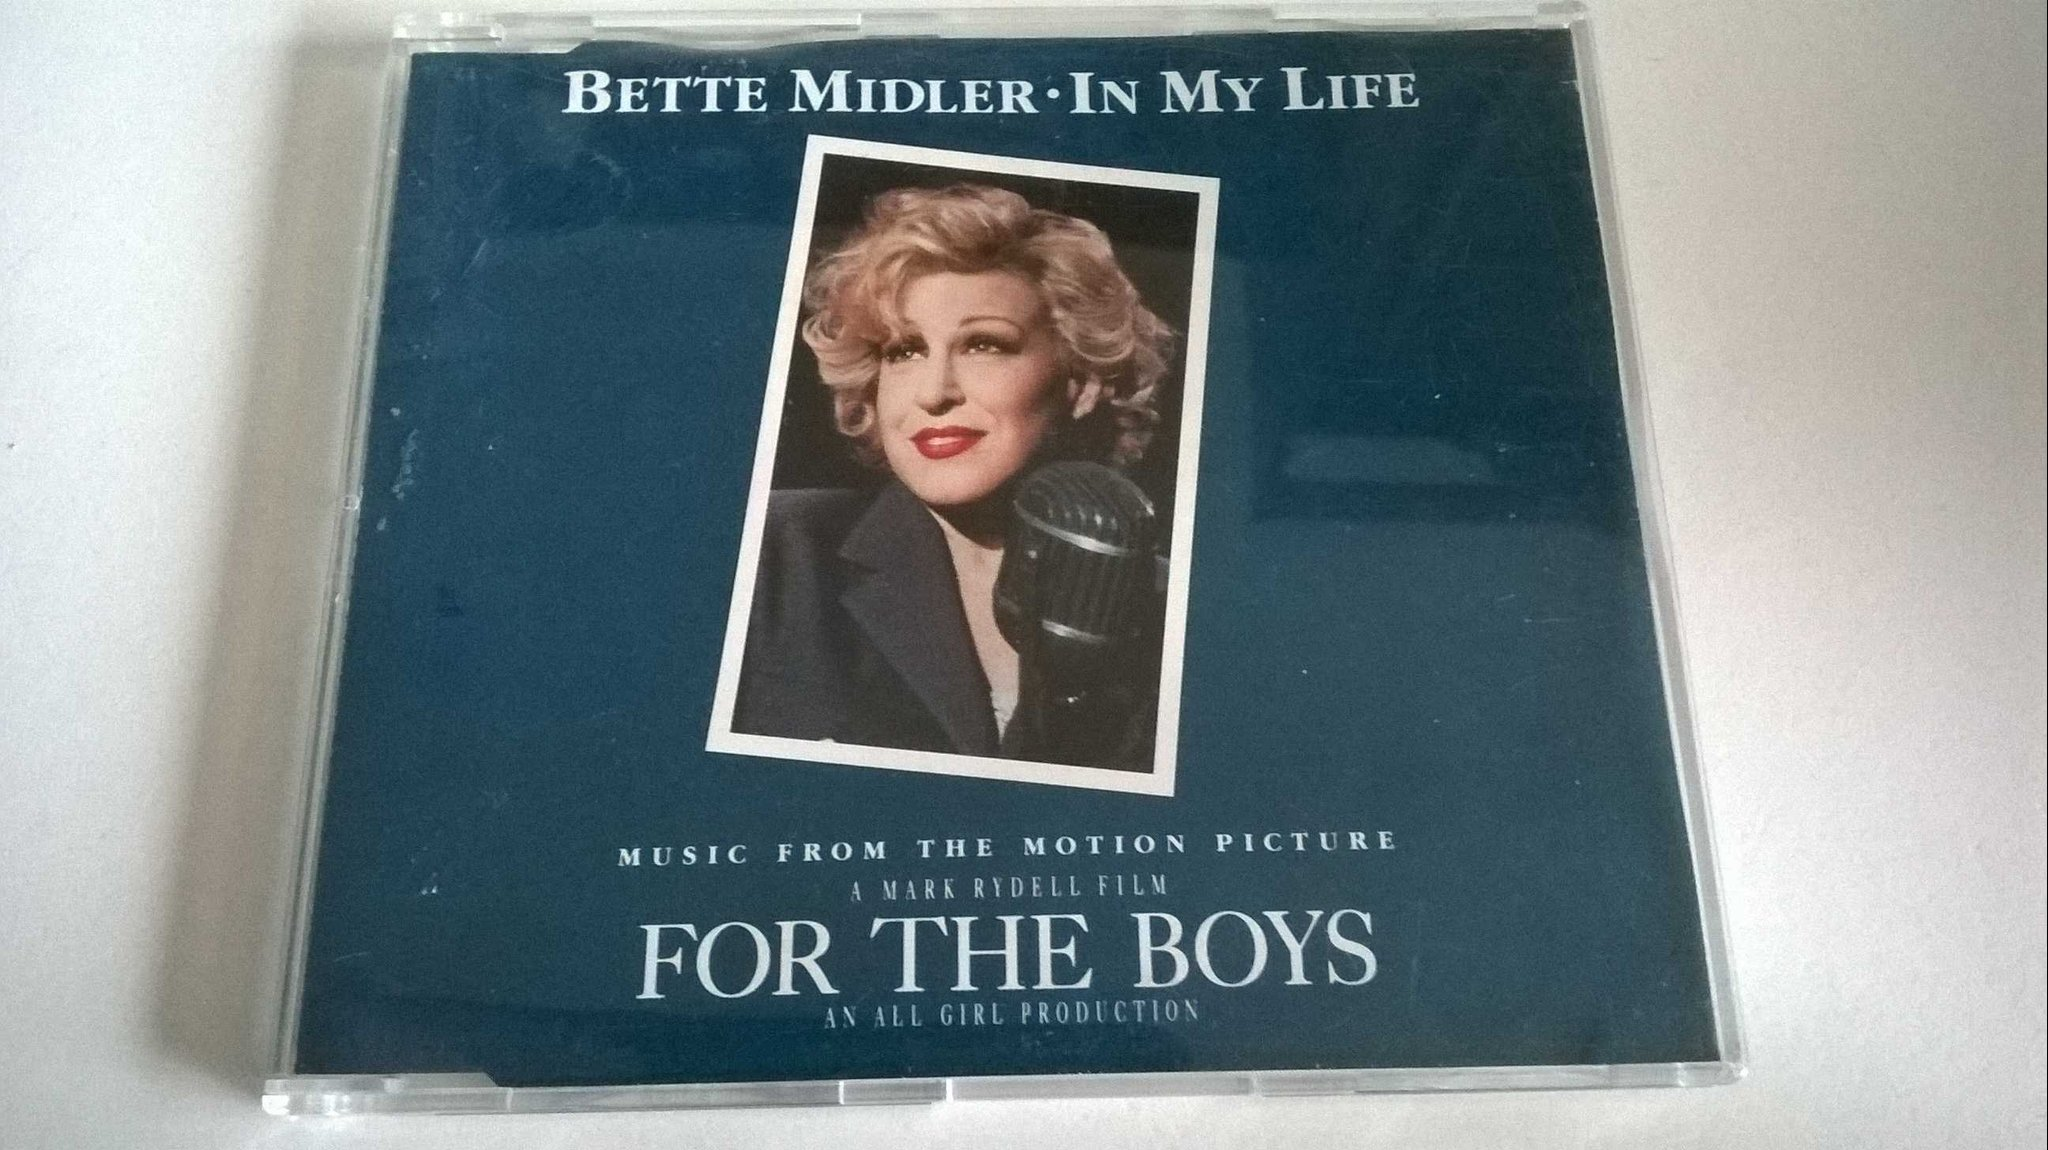 Bette Midler - In my life, CD